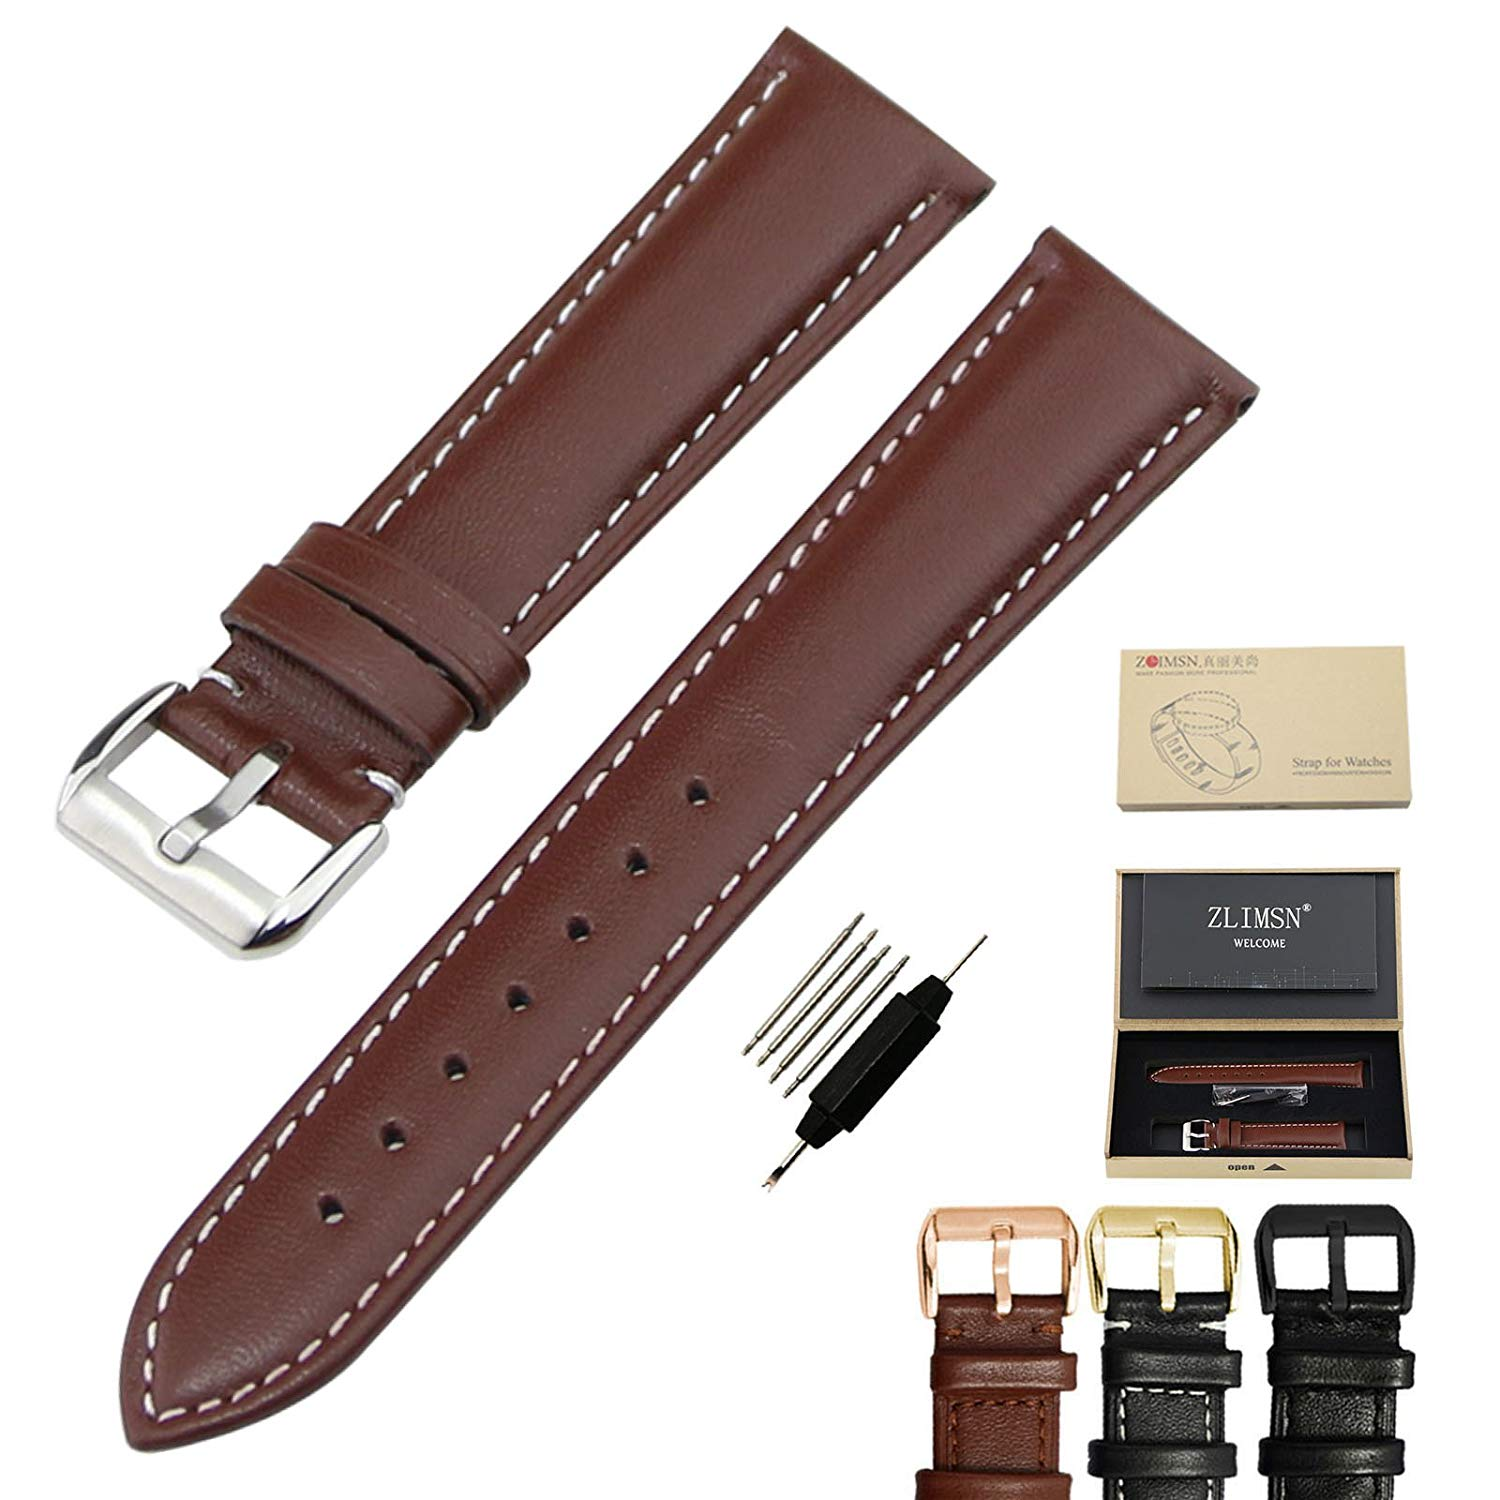 ZLIMSN Leather Watch Strap Watch Band Wrist Replacement Pin Buckle Super Soft (18mm, 20mm 22mm Or 24mm)